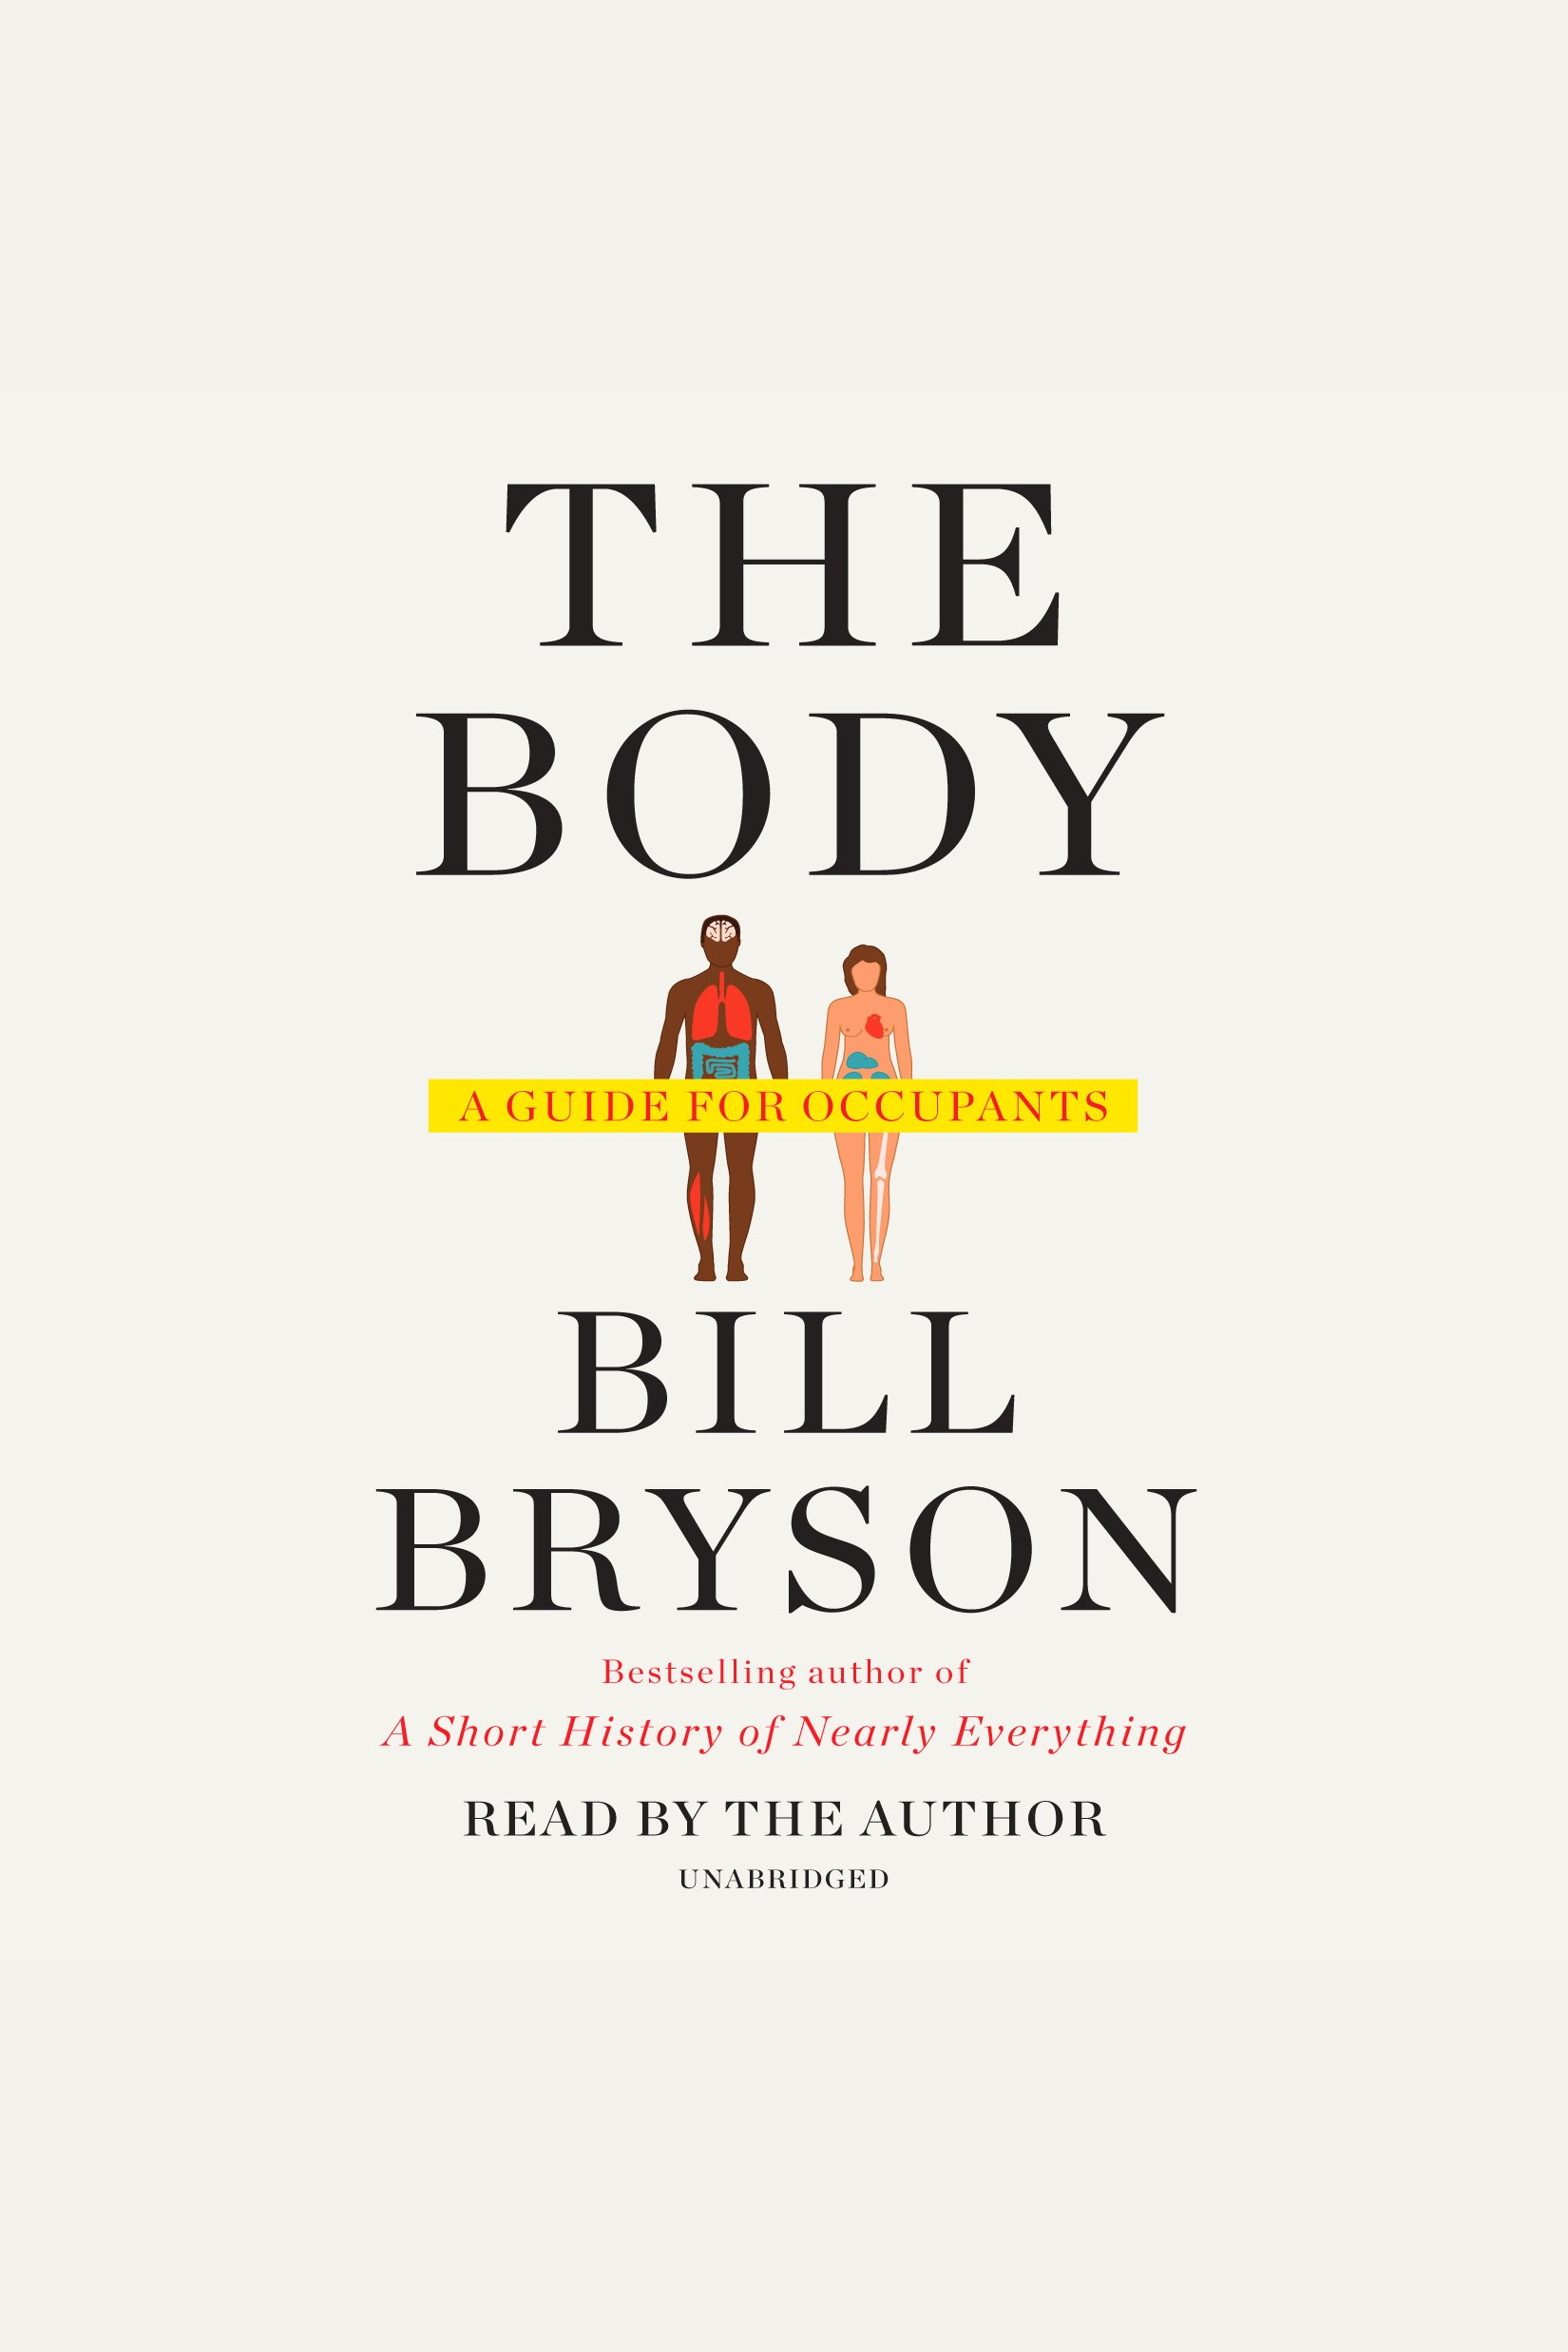 The body a guide for occupants cover image